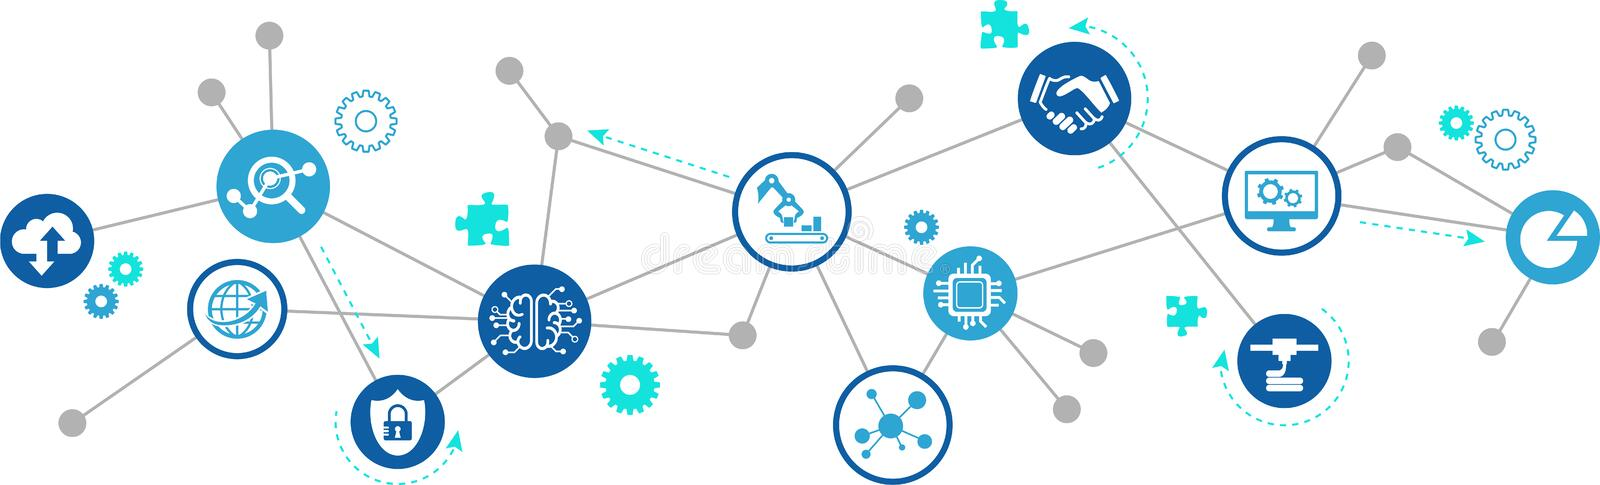 Smart factory, smart industry, iot concept: big data / cloud solutions / innovative production / simulation. Abstract concept in blue/grey color with royalty free illustration